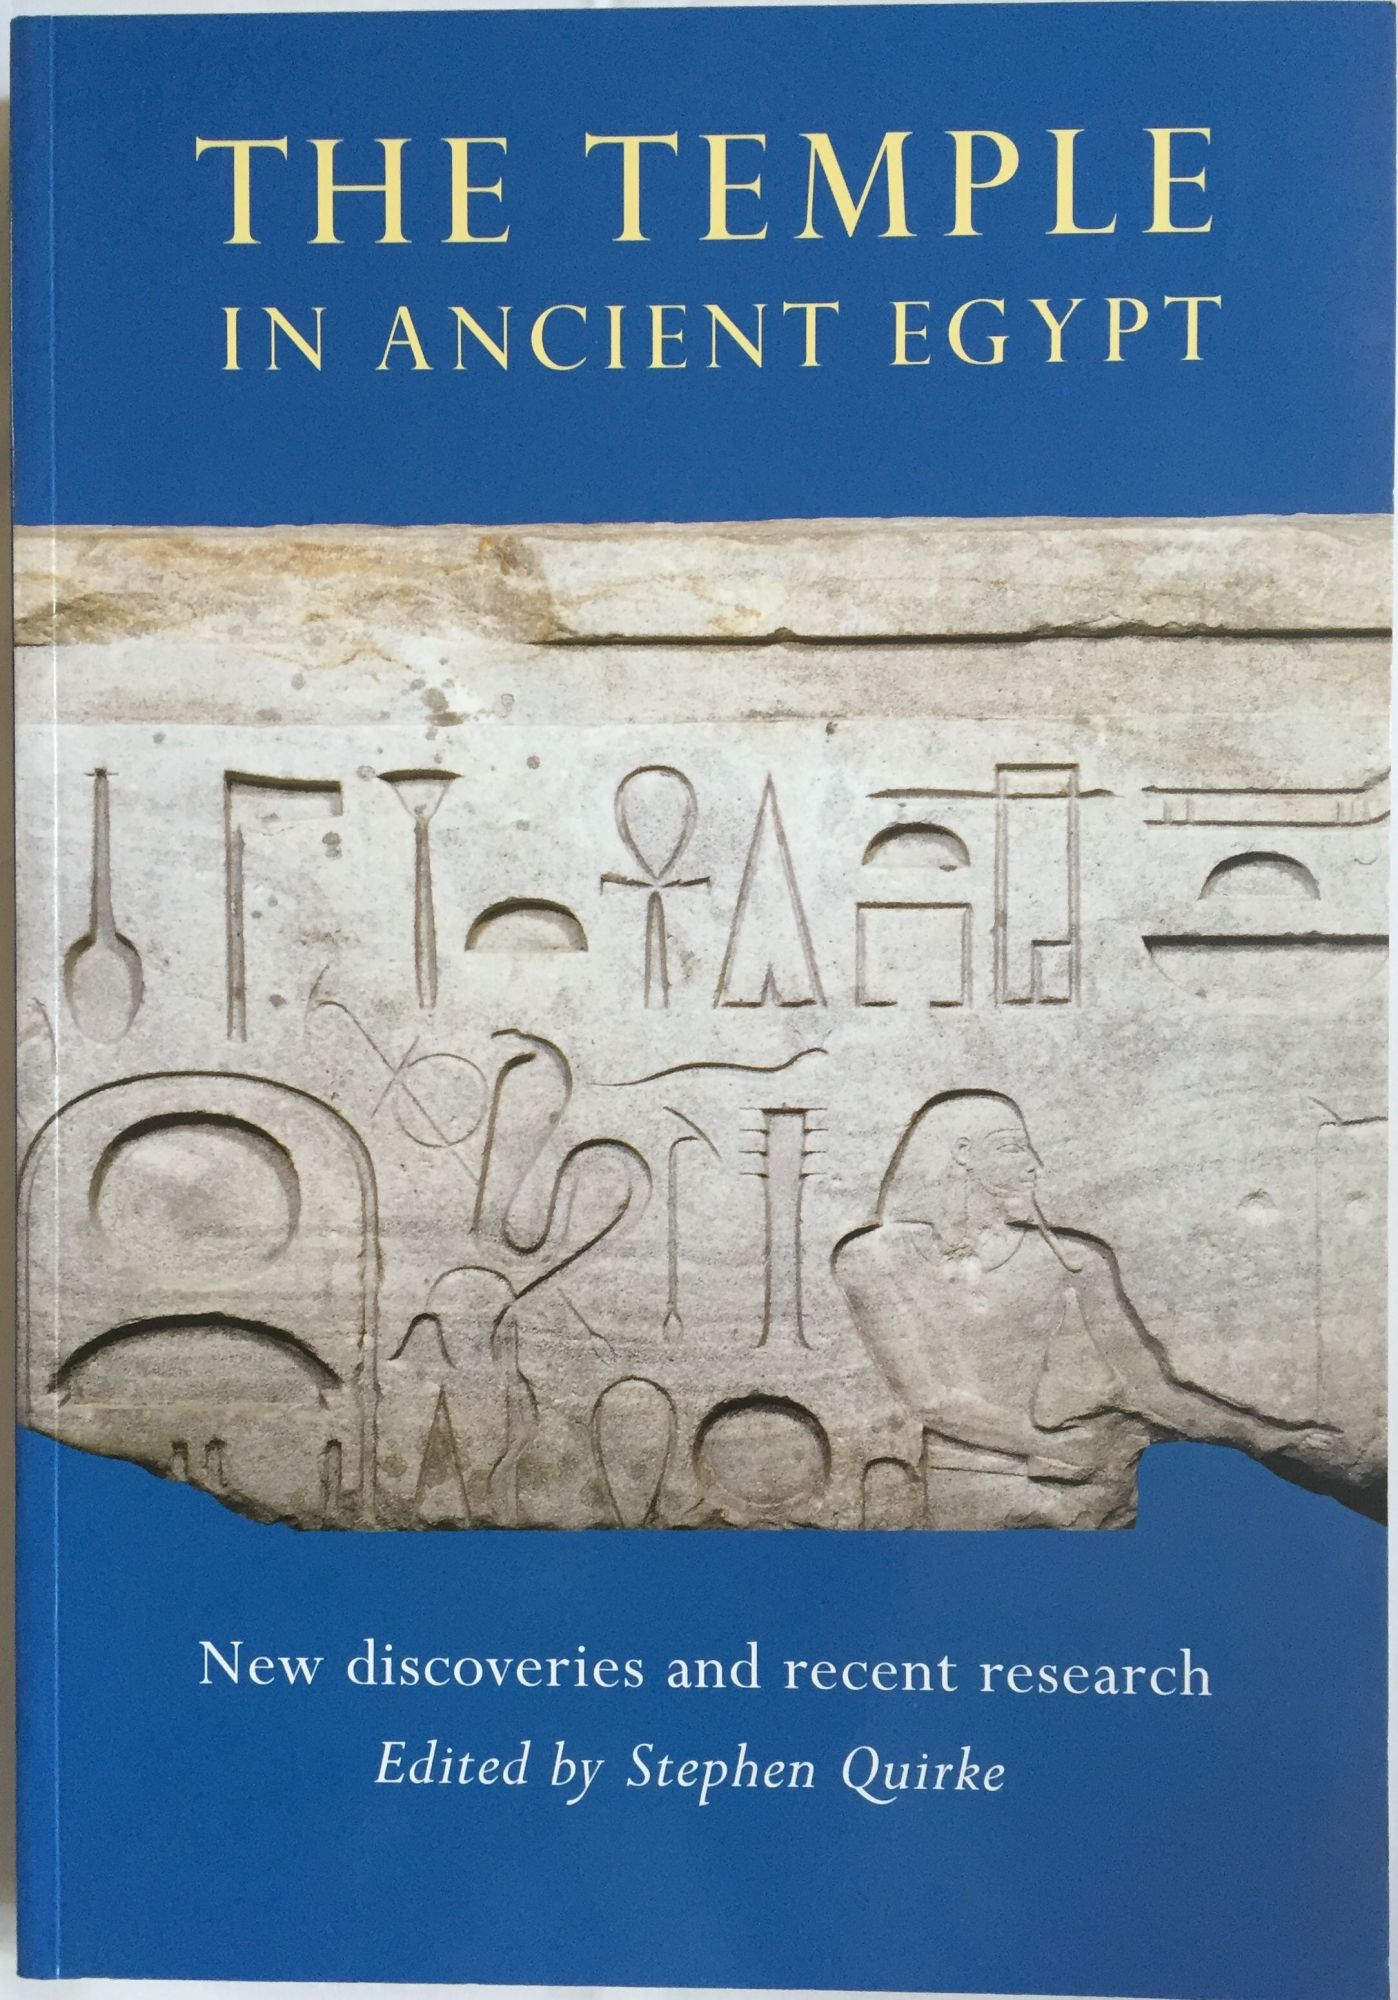 ancient egyptian religion research paper What the in-crowd won't let you know about ancient egyptian religion research paper, how to write essay examples free, cyrus merchant articles, book review fish for life.